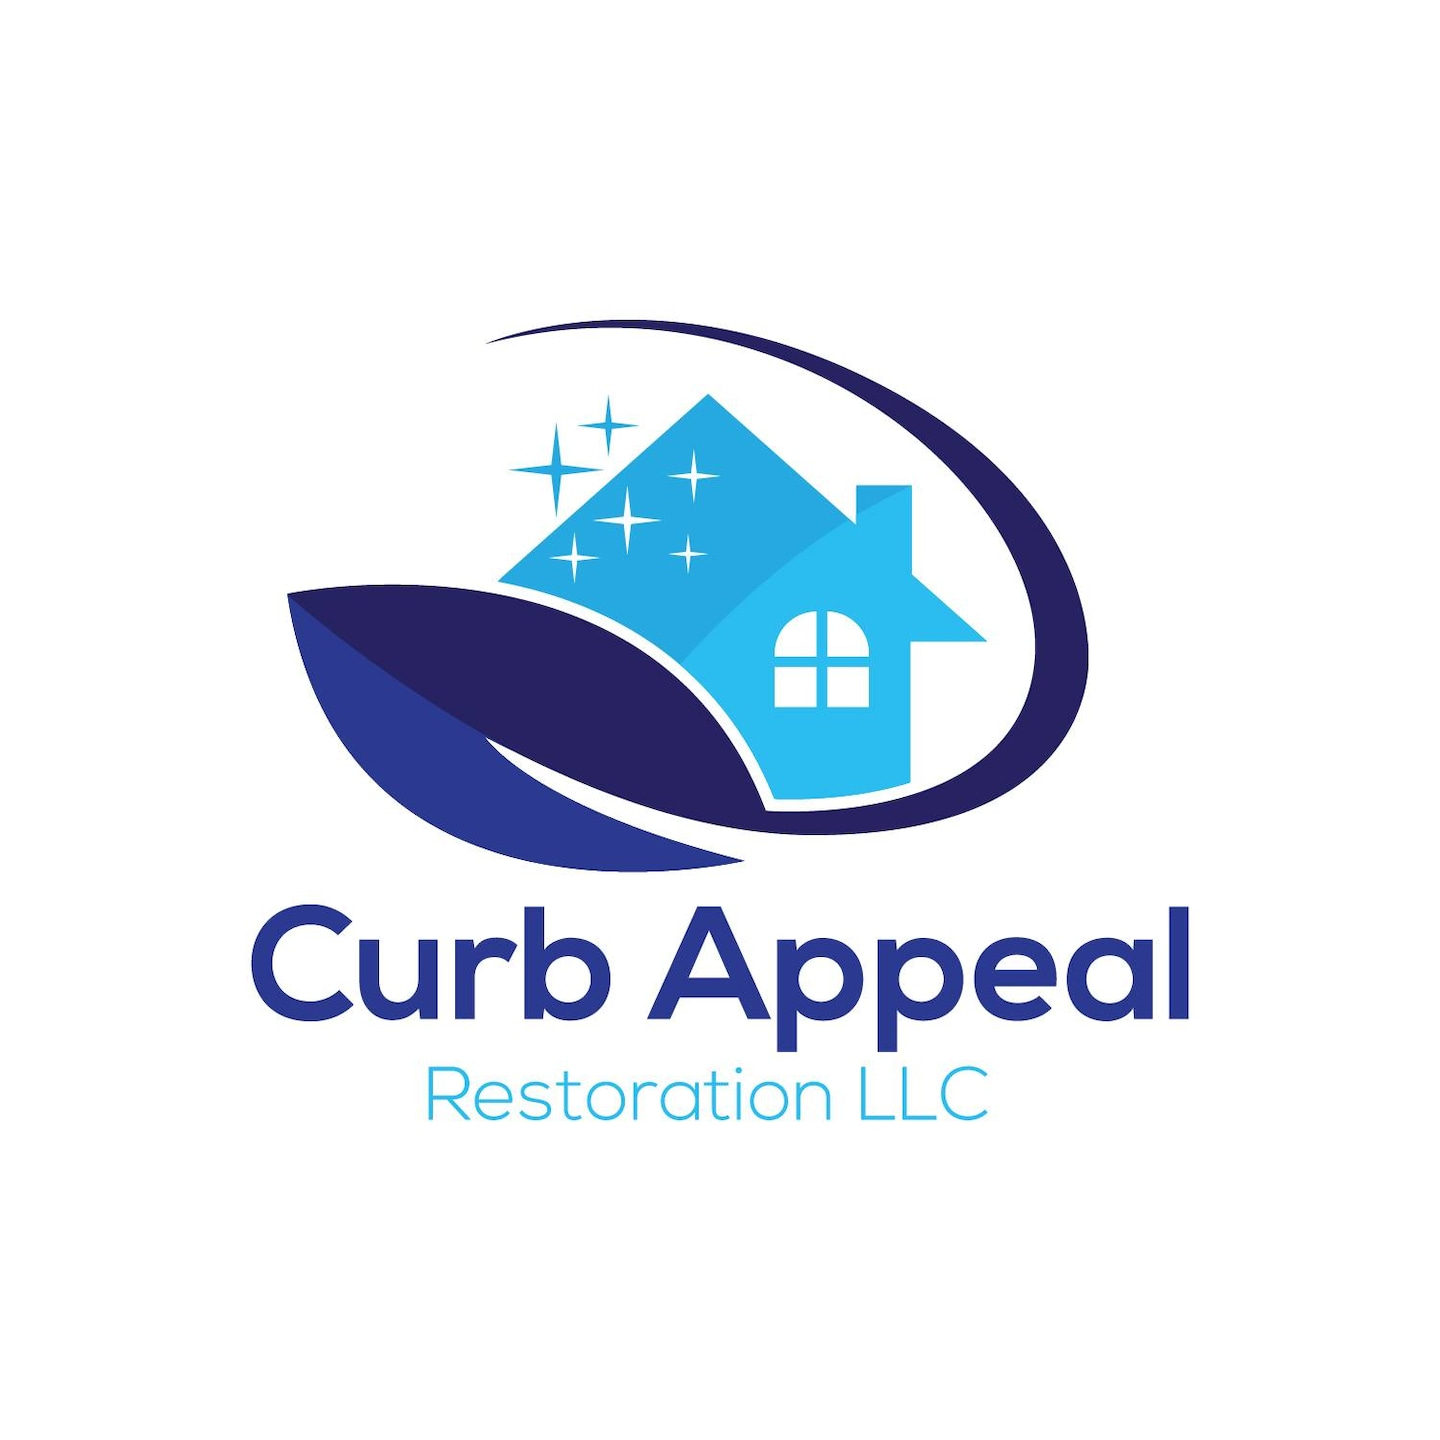 Curb Appeal Restoration LLC